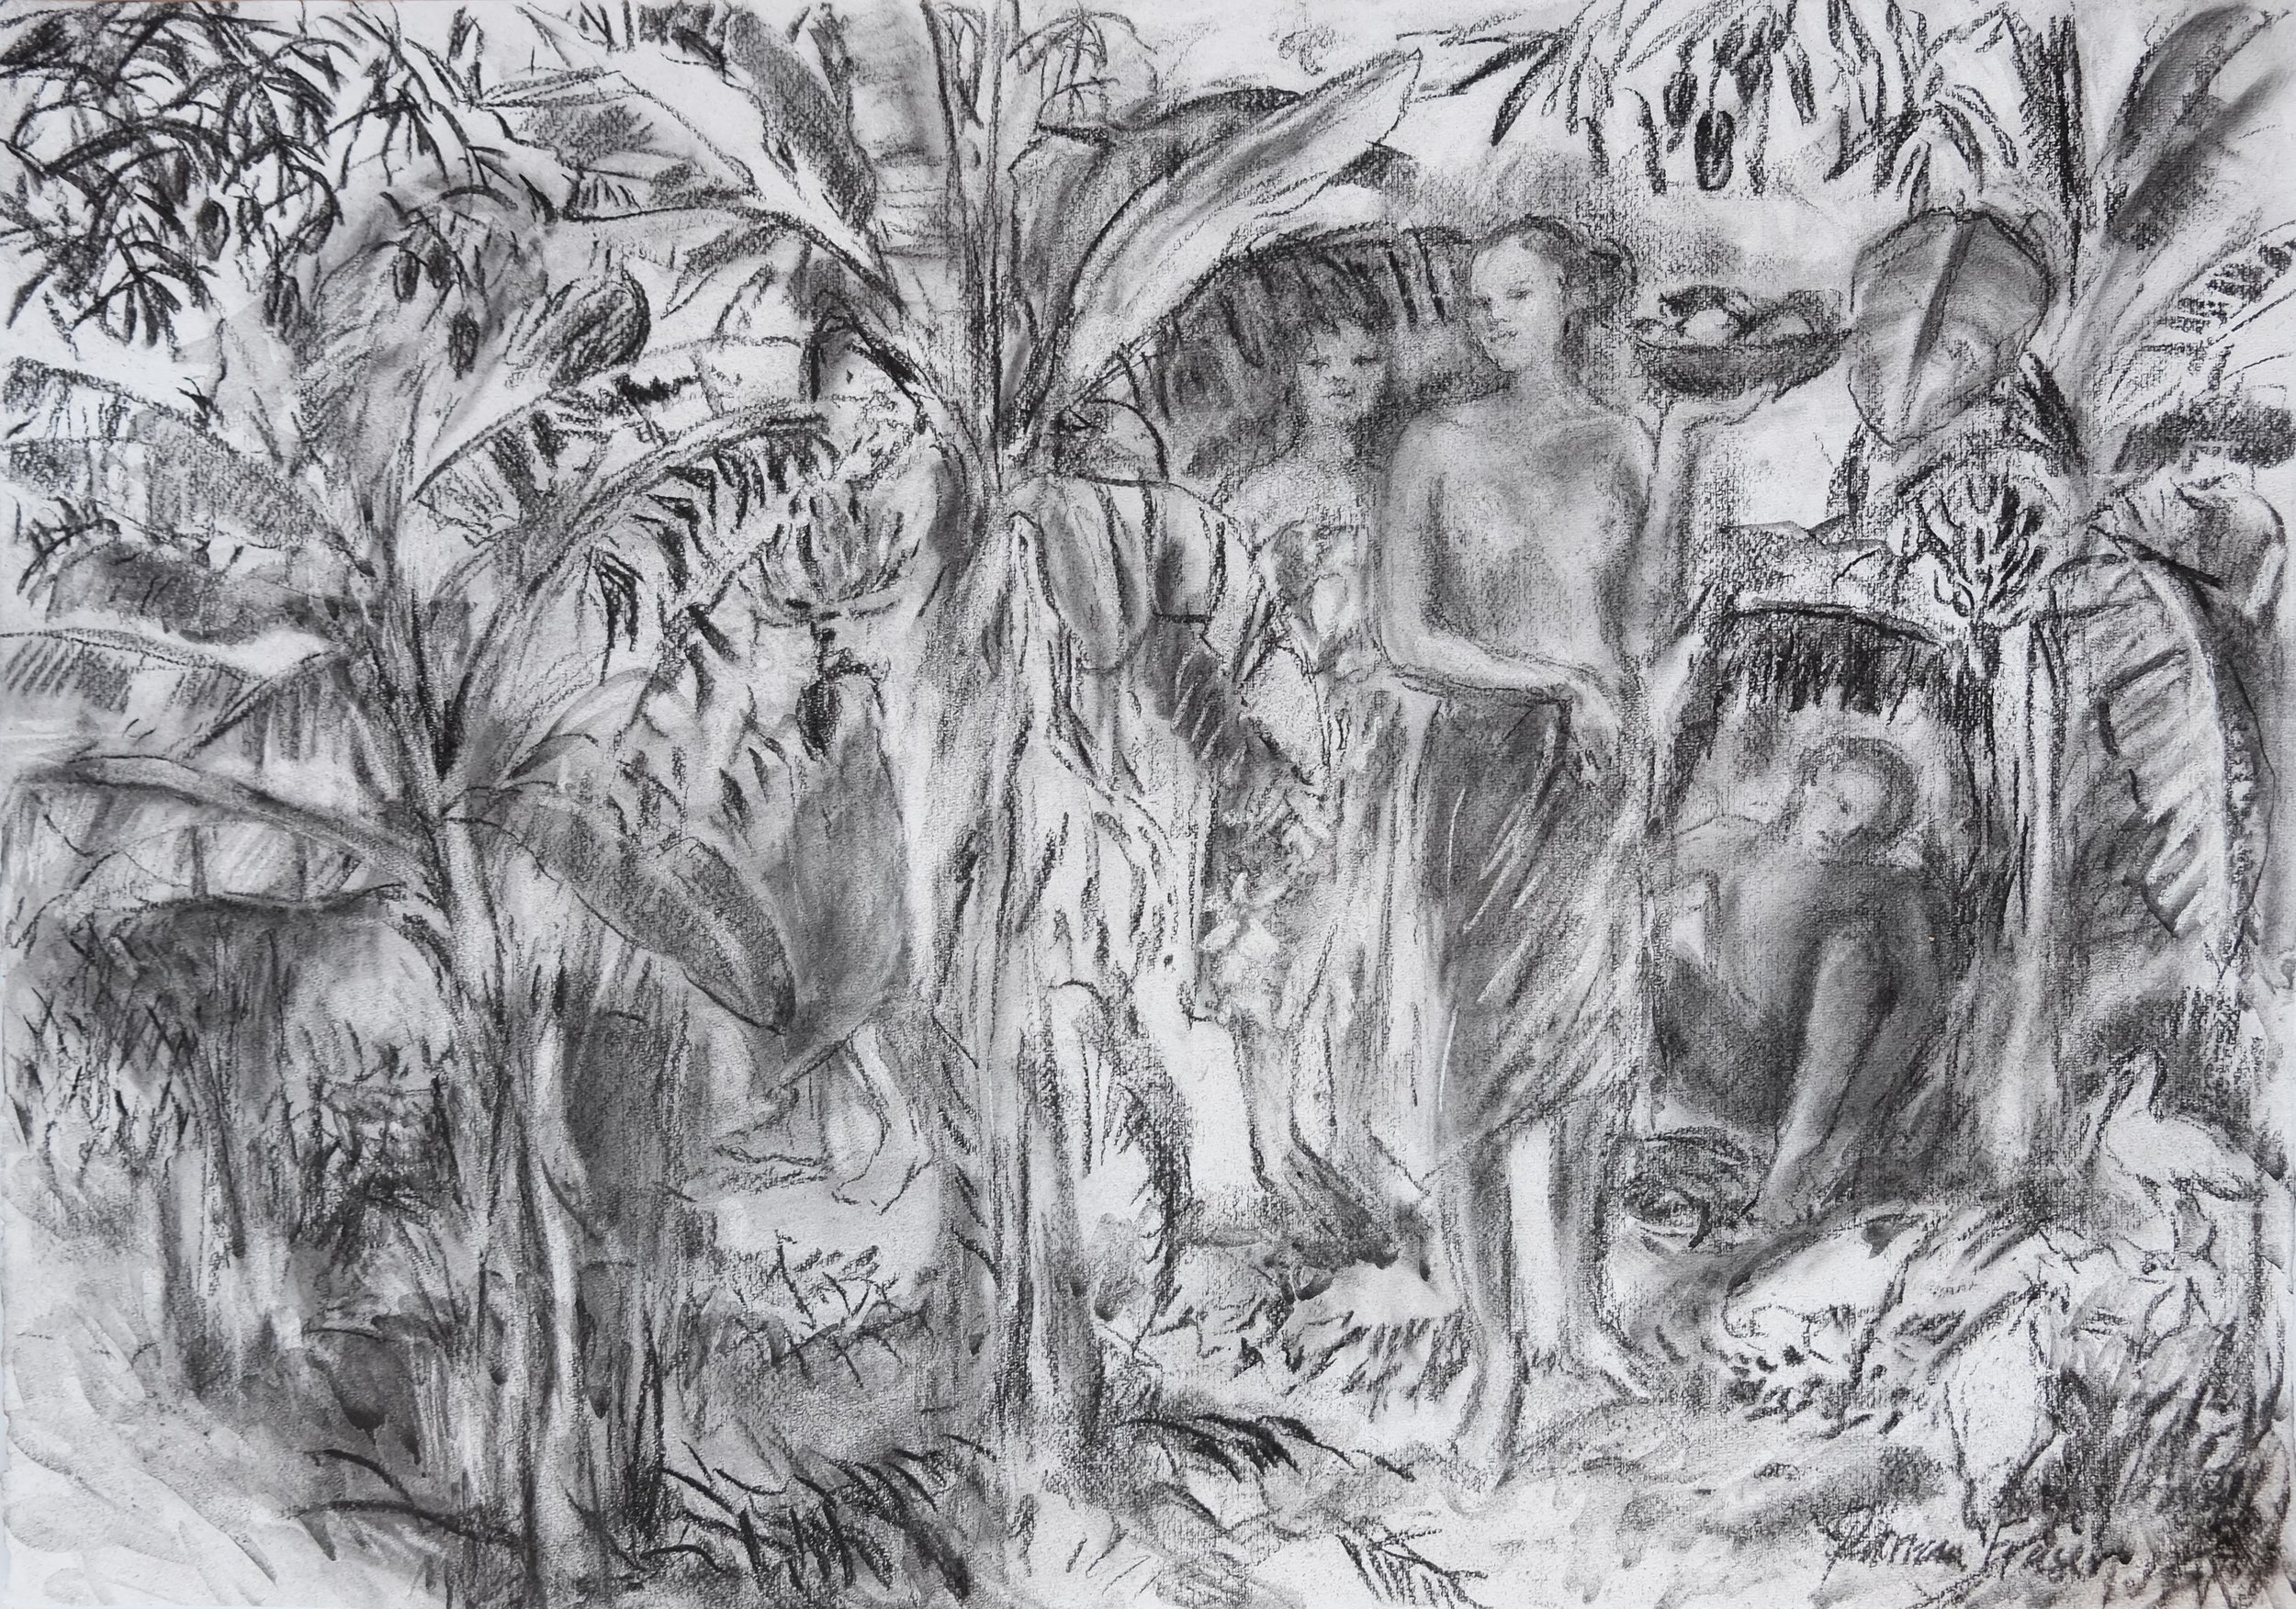 THE GATHERING  50 x 71cm Charcoal on Fabriano R 8 800